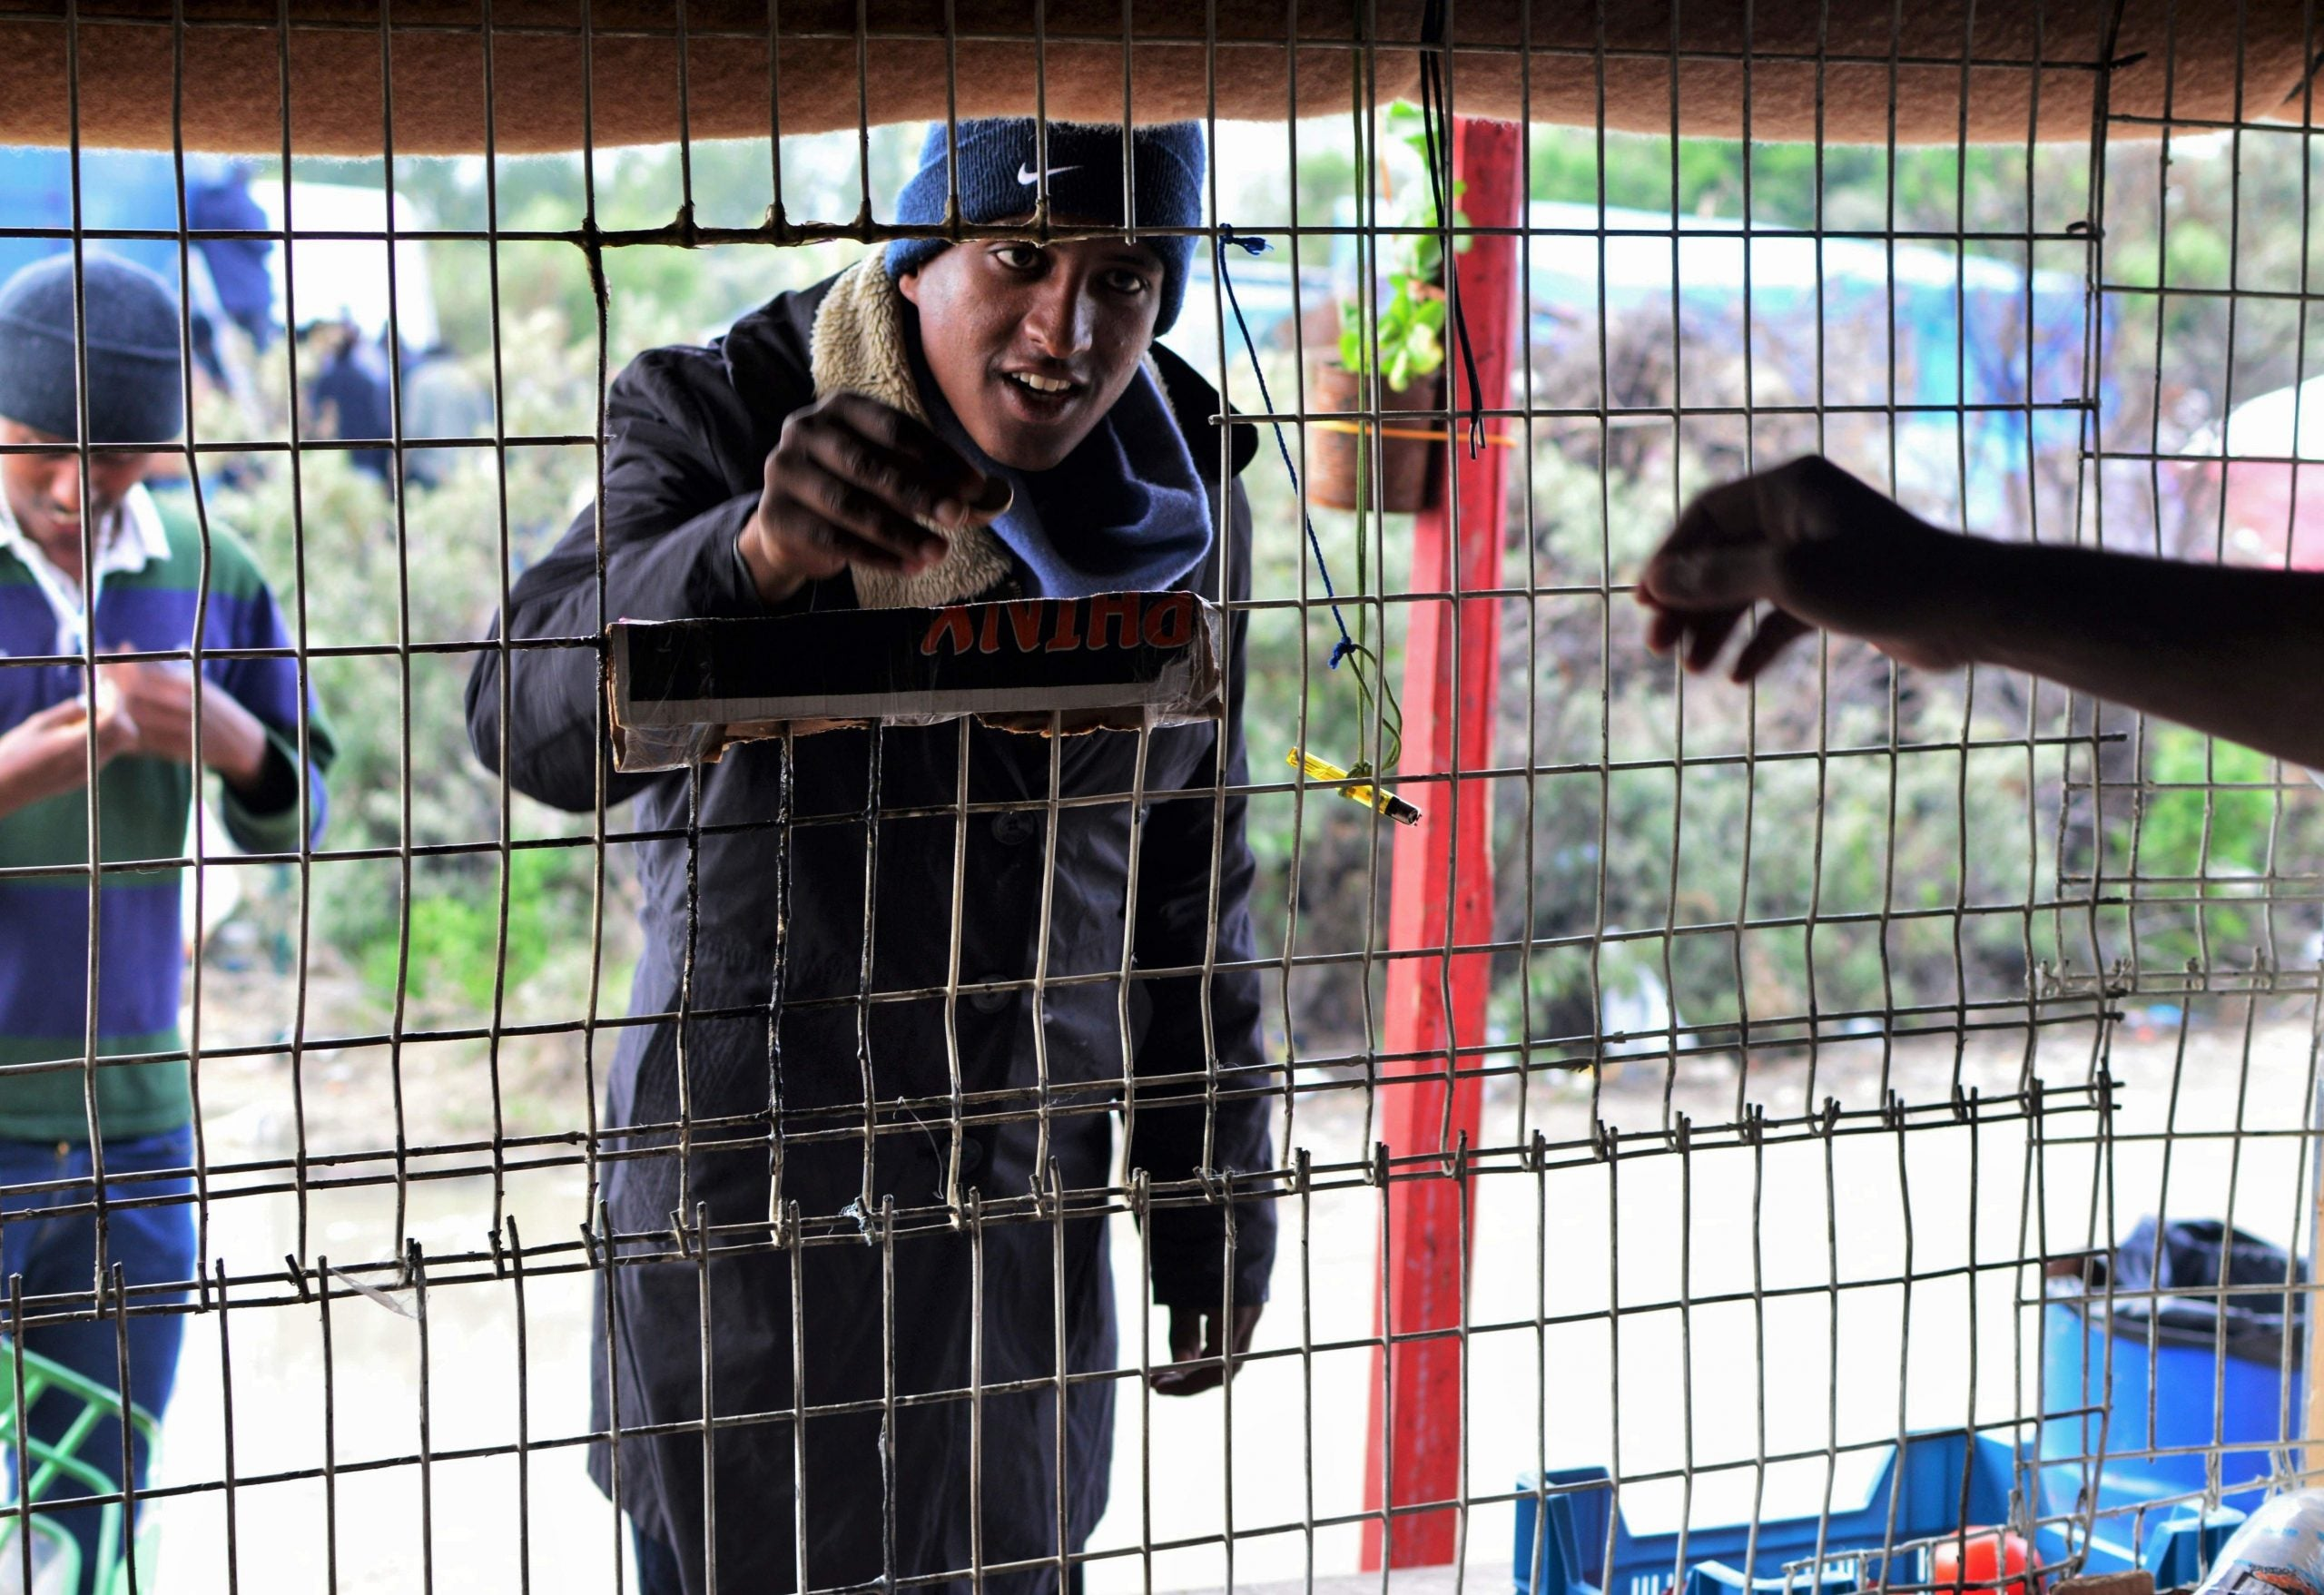 The closure of small businesses in Calais is punishing entrepreneurial refugees like Wakil